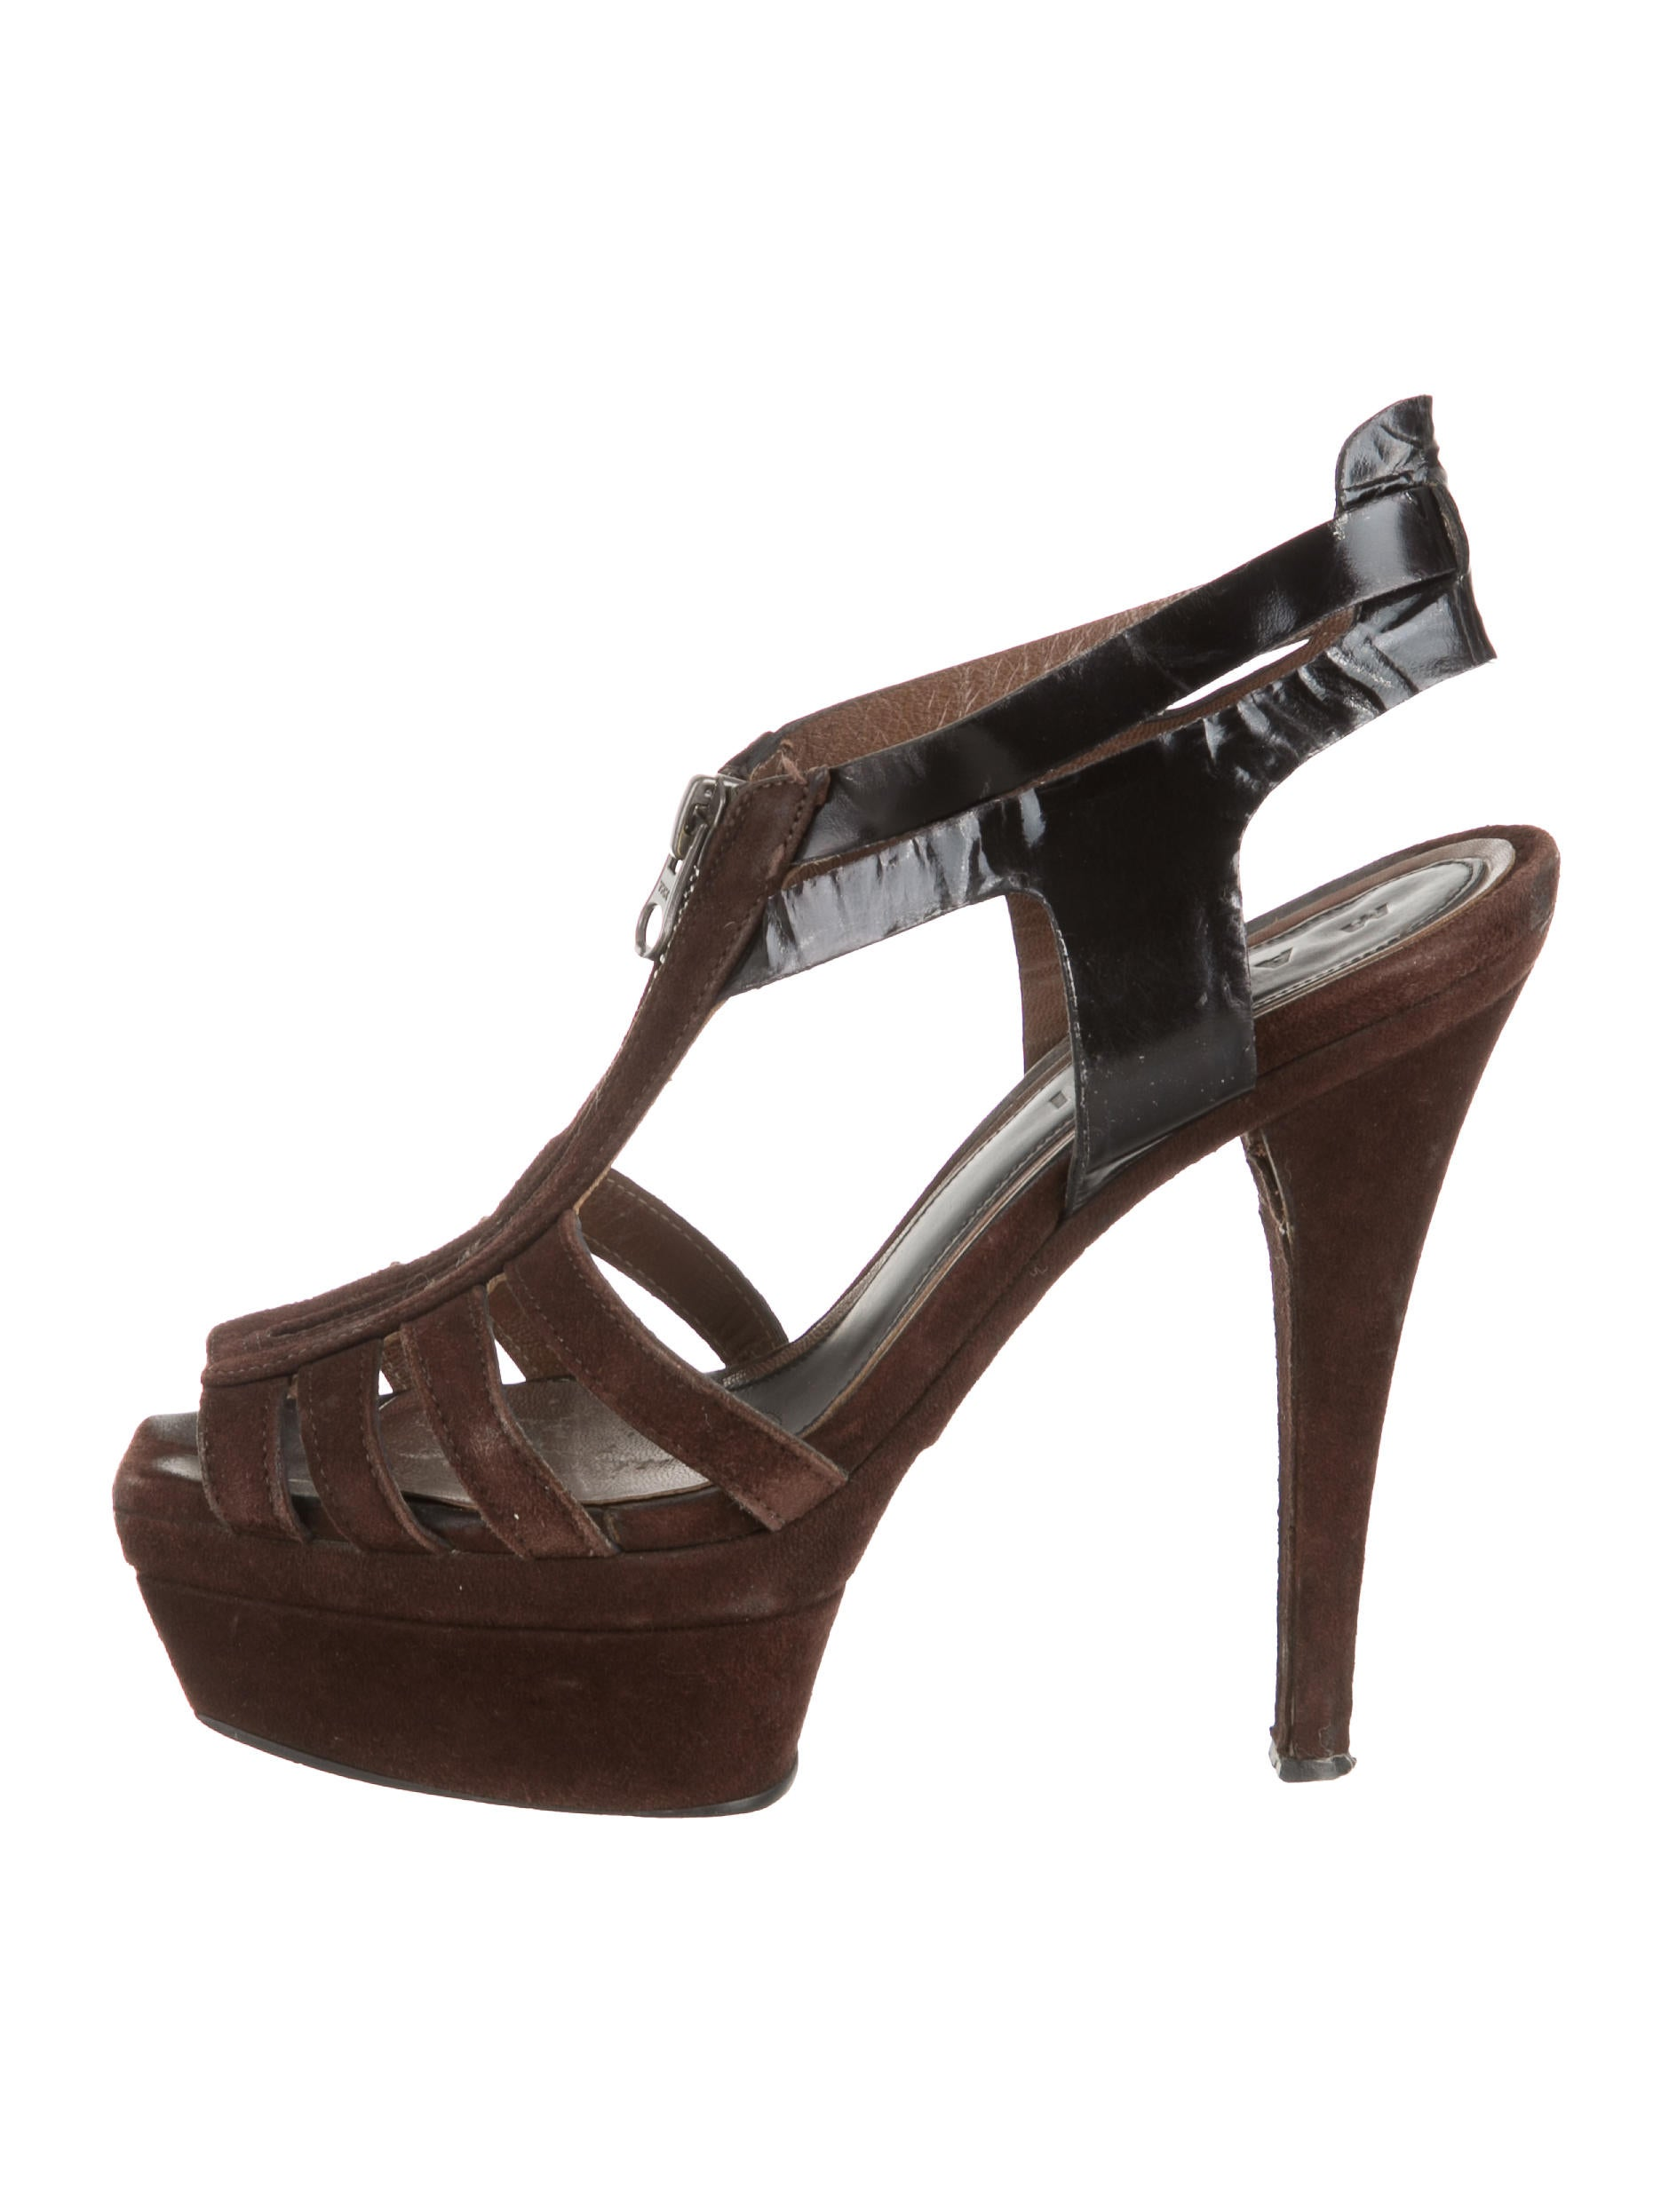 marni suede platform sandals shoes man40398 the realreal